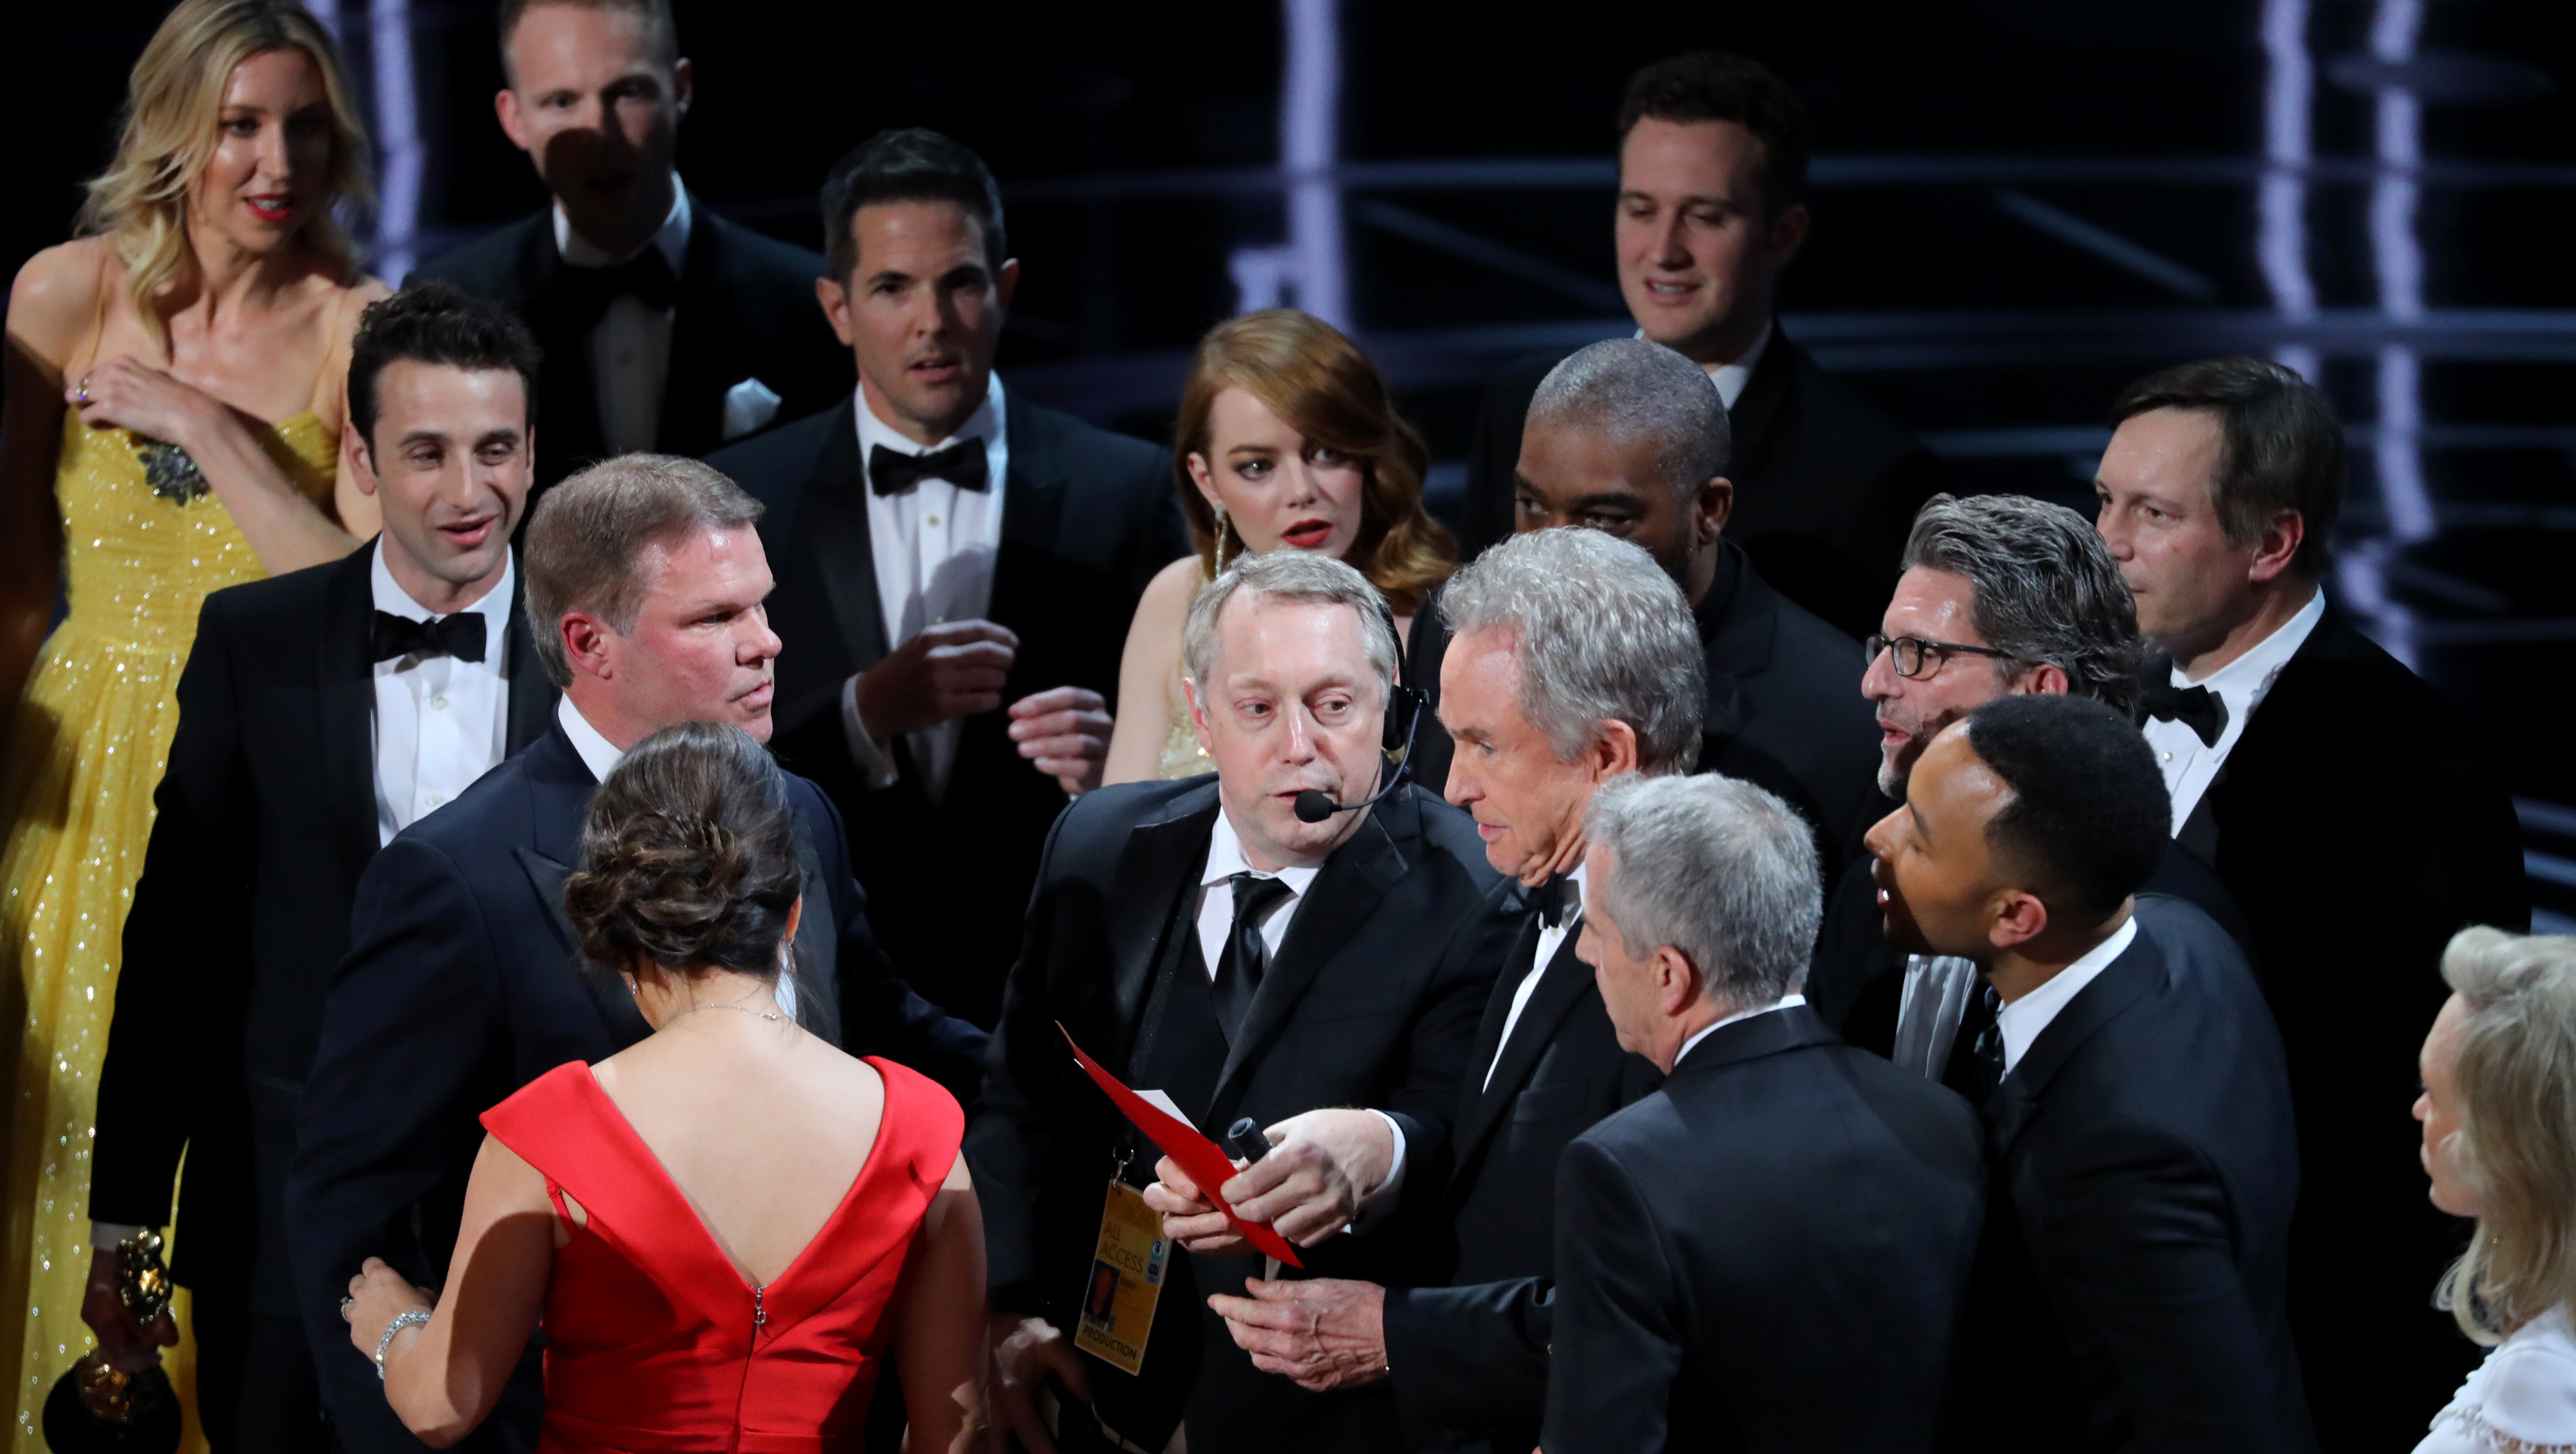 Warren Beatty hizo el ridículo al premiar a La La Land en vez de a Moonlight.